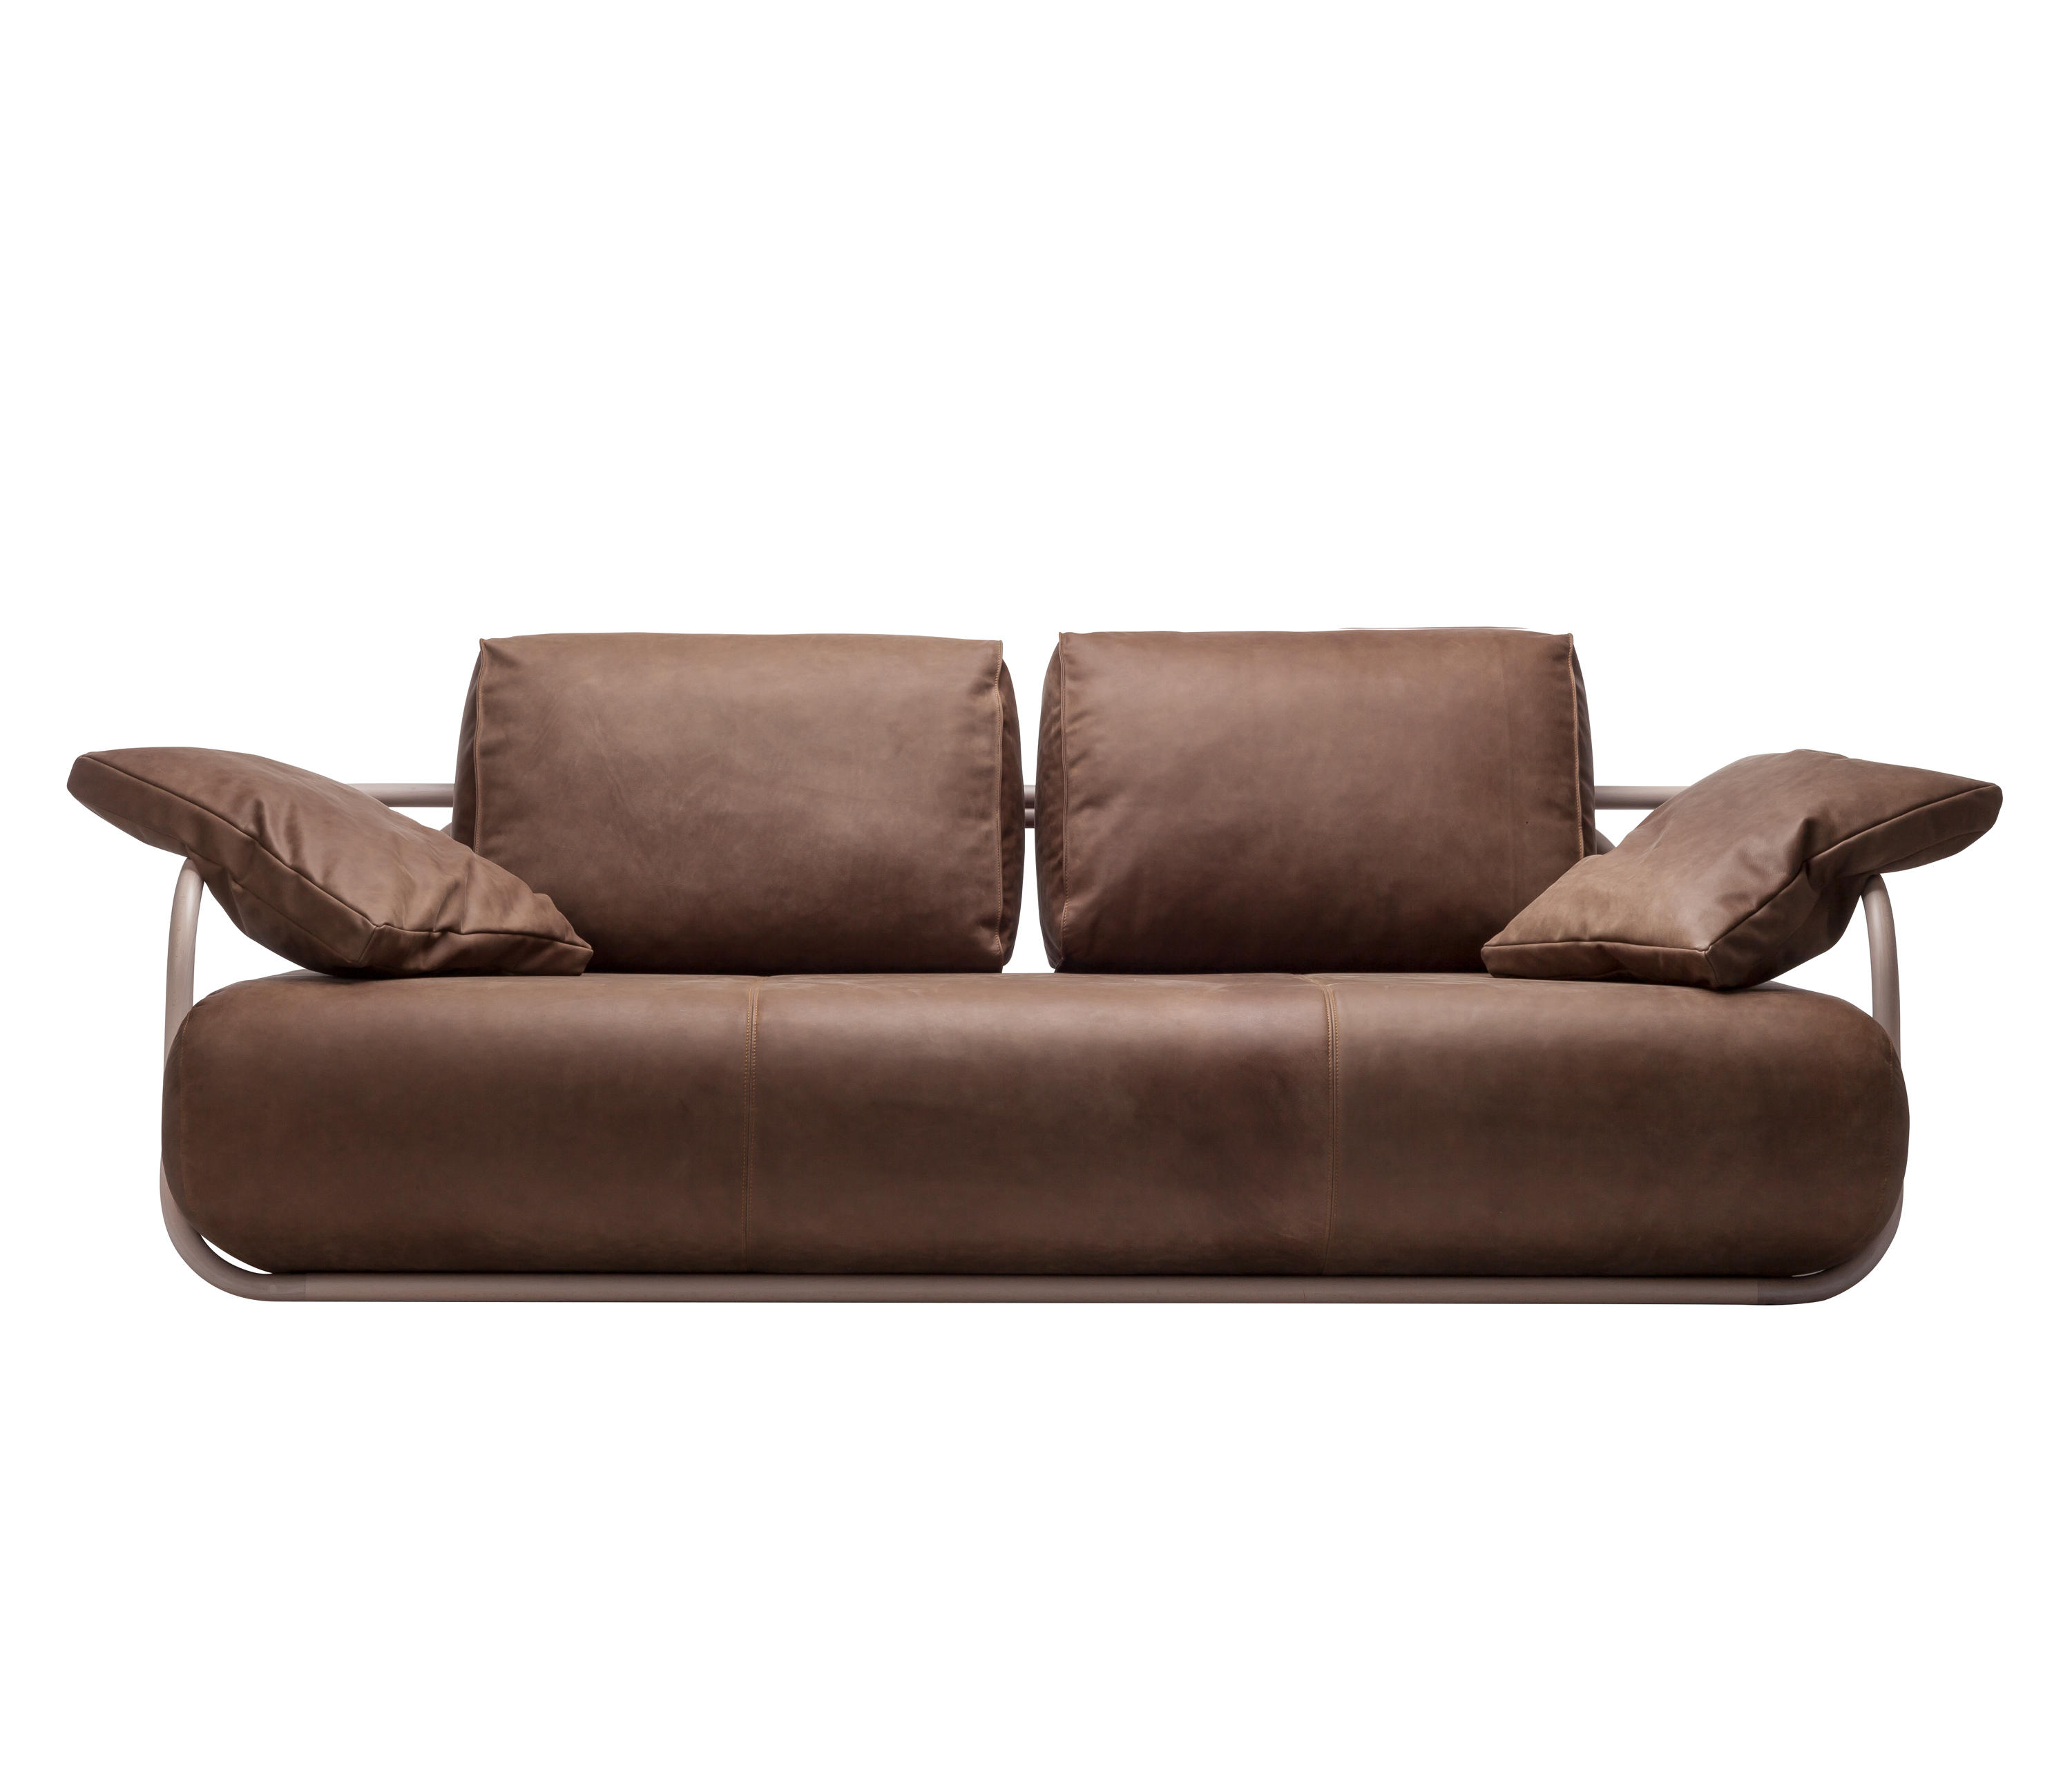 Sofa: 2002 BENTWOOD SOFA - Sofas From Thonet